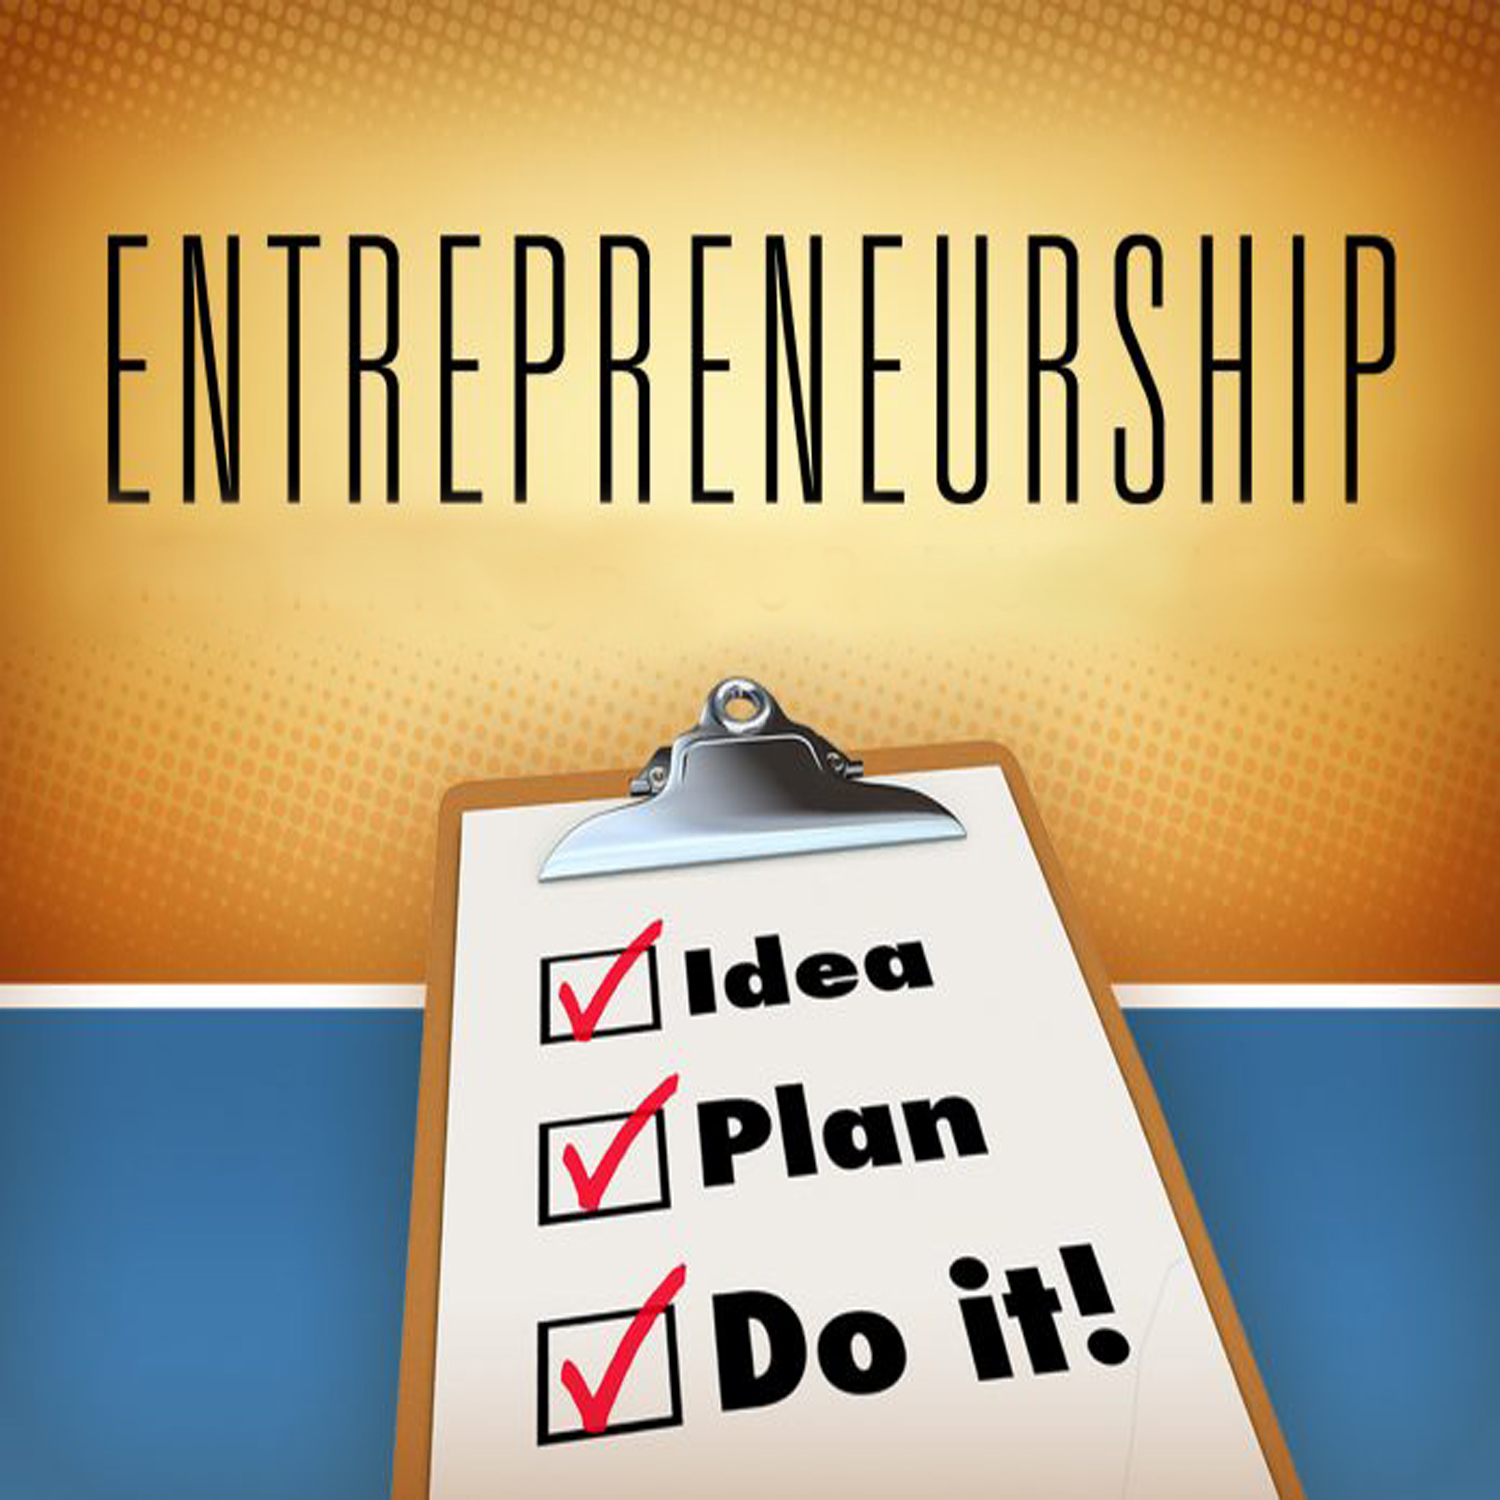 Course Image ENTREPRENEURSHIP